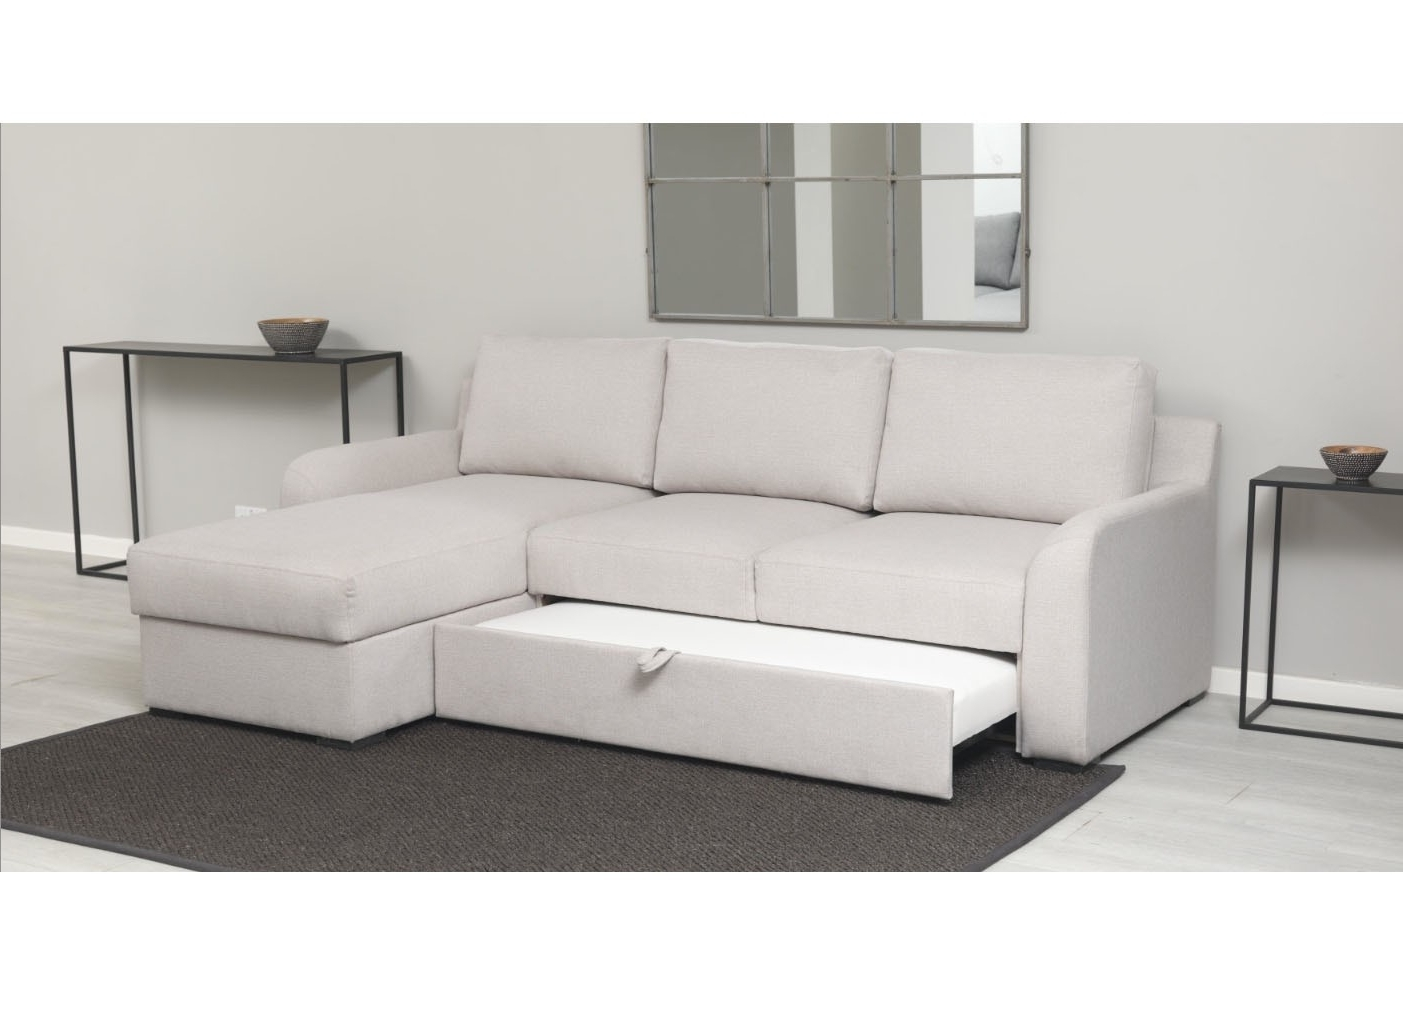 Preferred Corner Sofa Bed With Storage – Mforum Regarding Sofa Beds With Chaise (View 10 of 15)